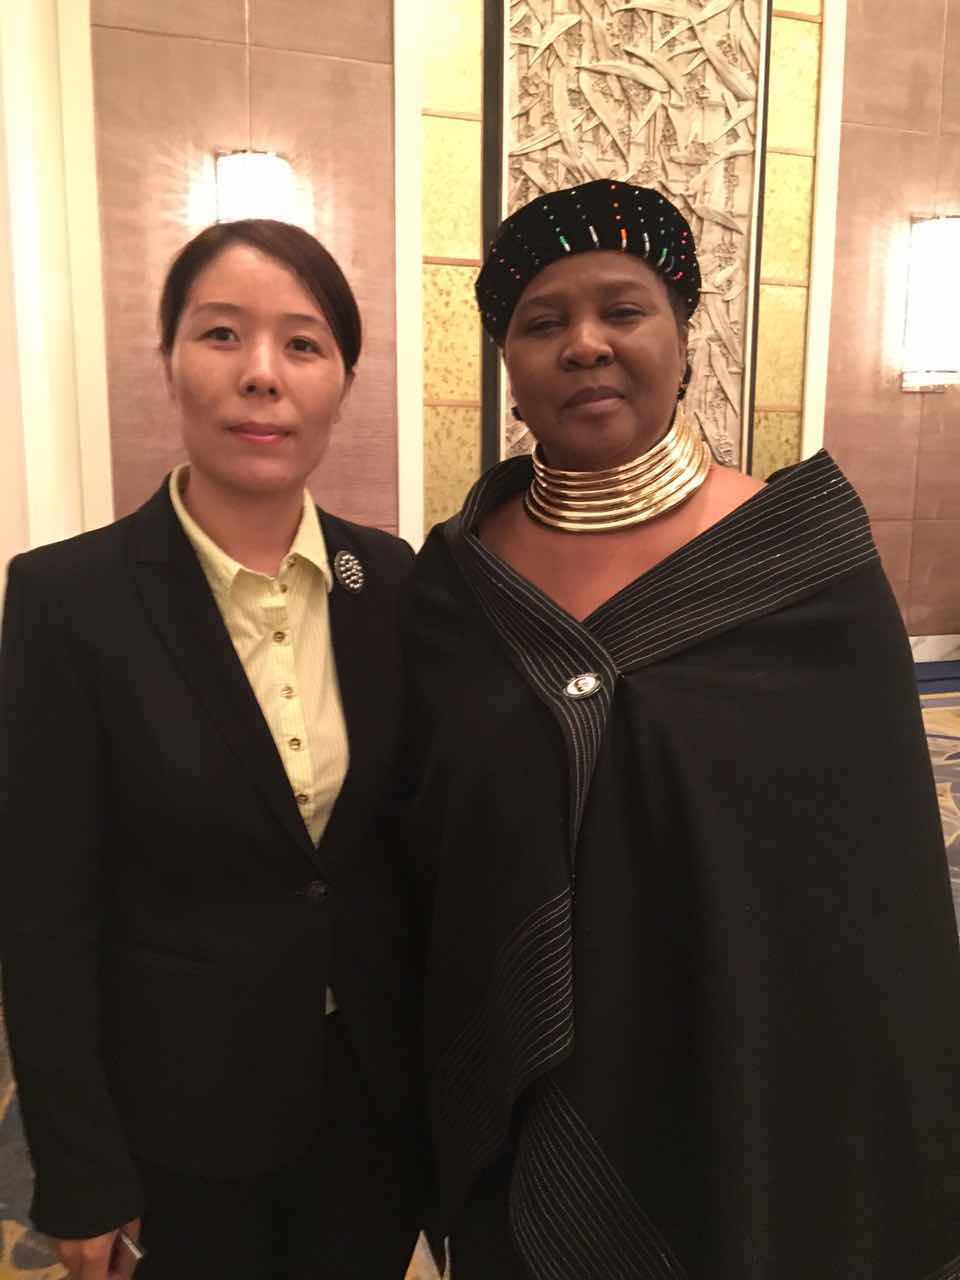 South African Ambassador to China Dolana F. Msimang and Secretary General Cui Jianghong of Cultural Exchange Organization of Presenting China to the World